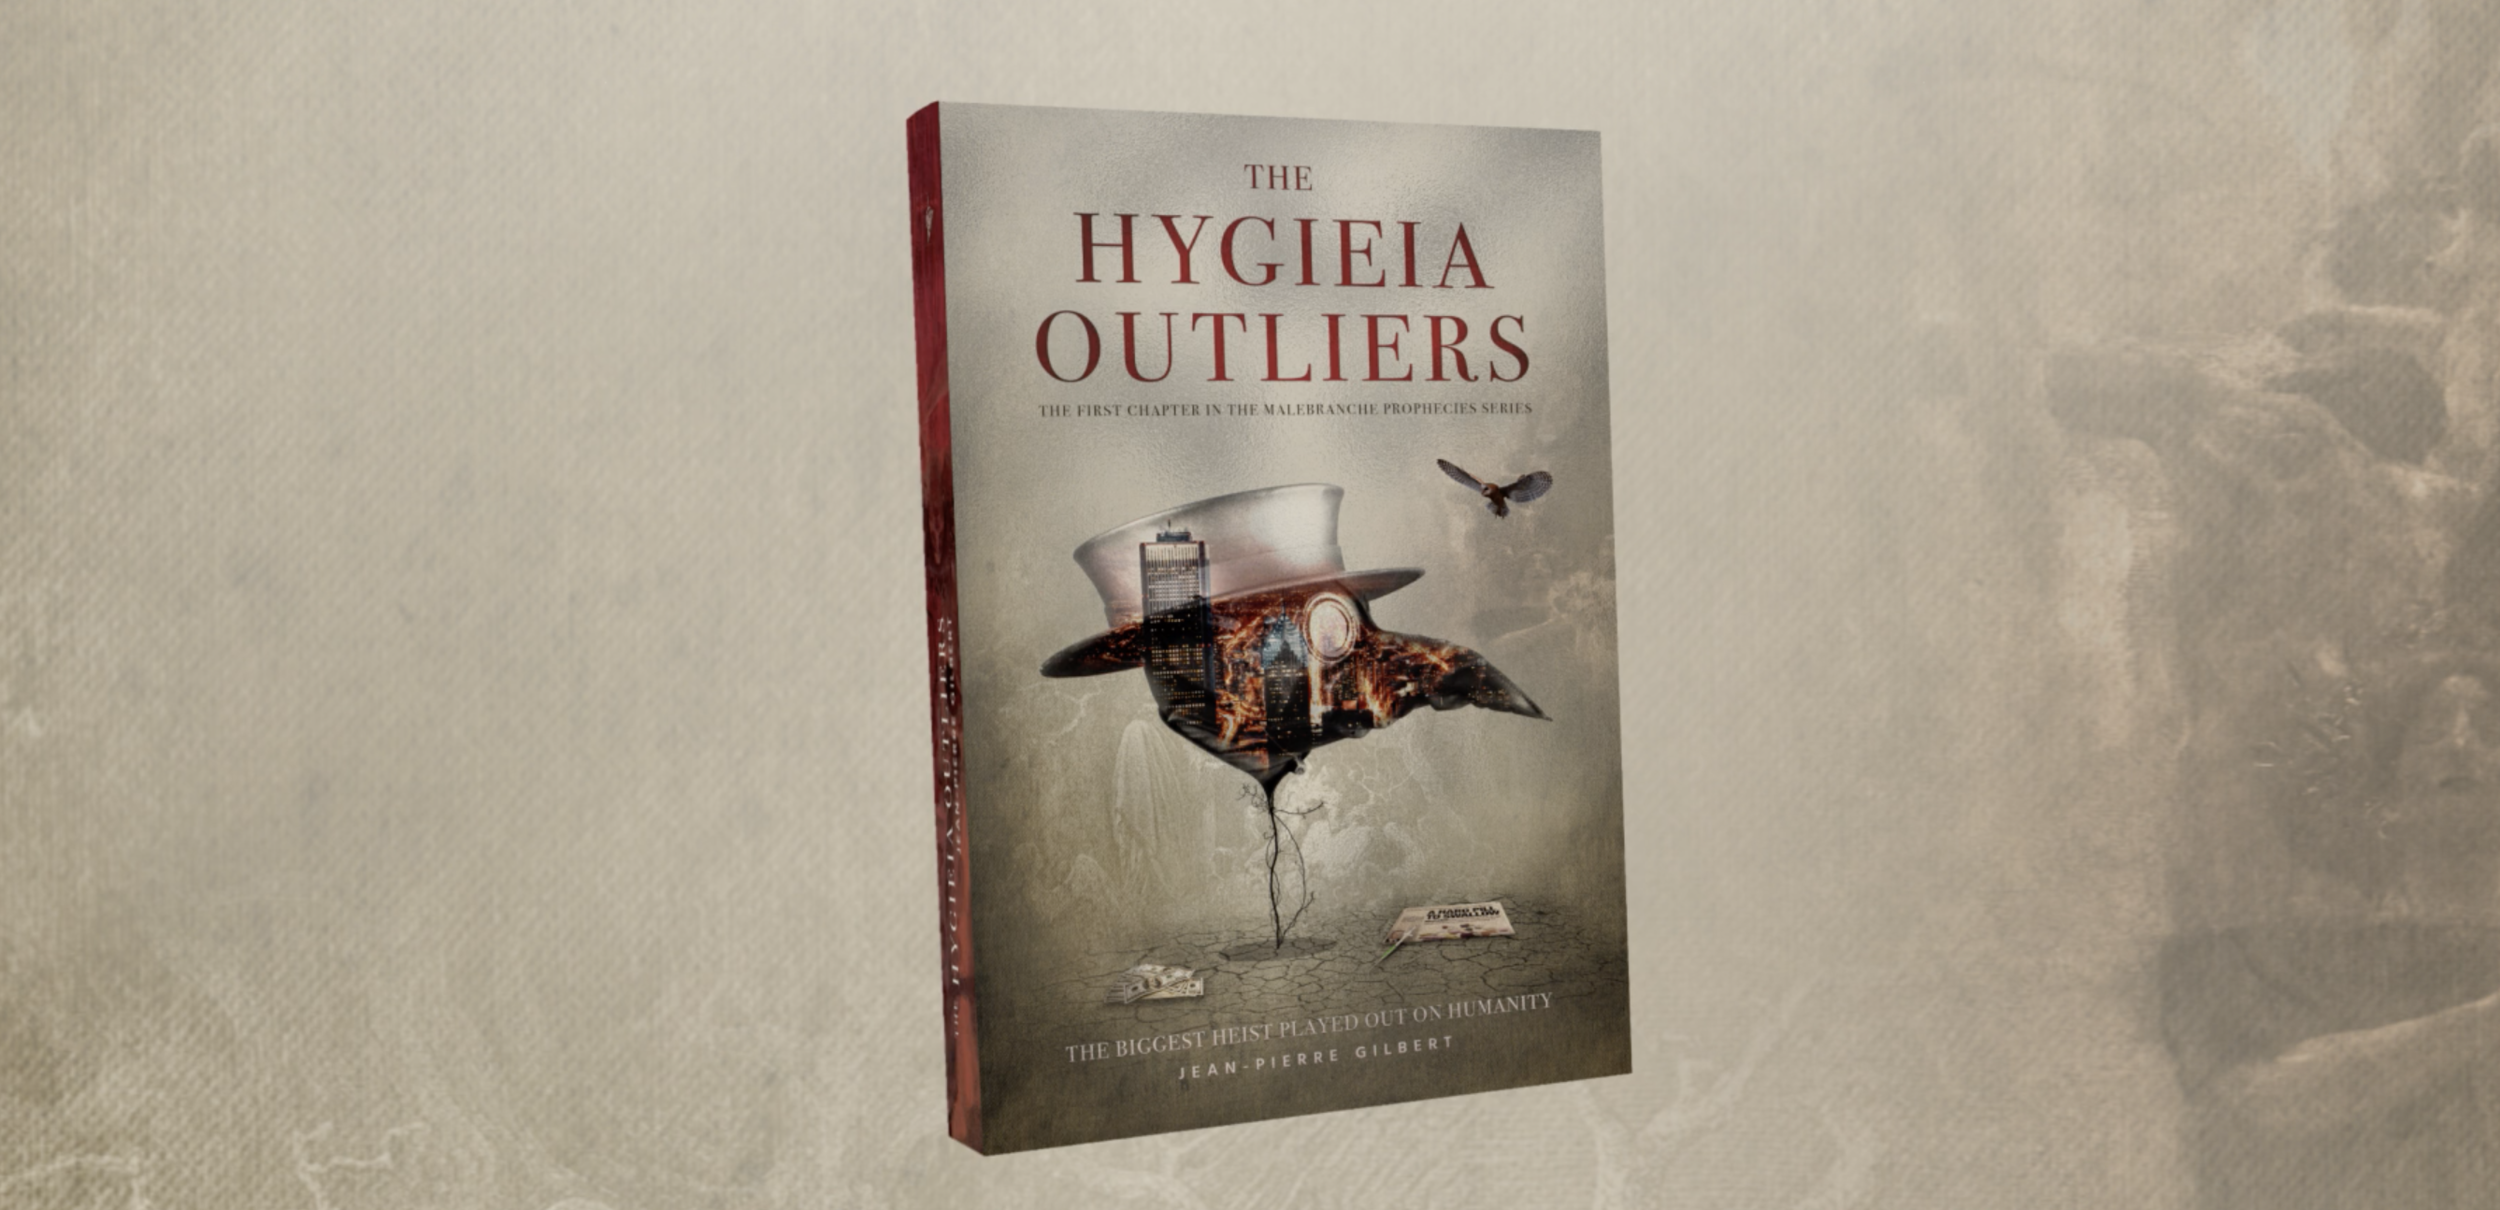 THE HYGIEIA OUTLIERS